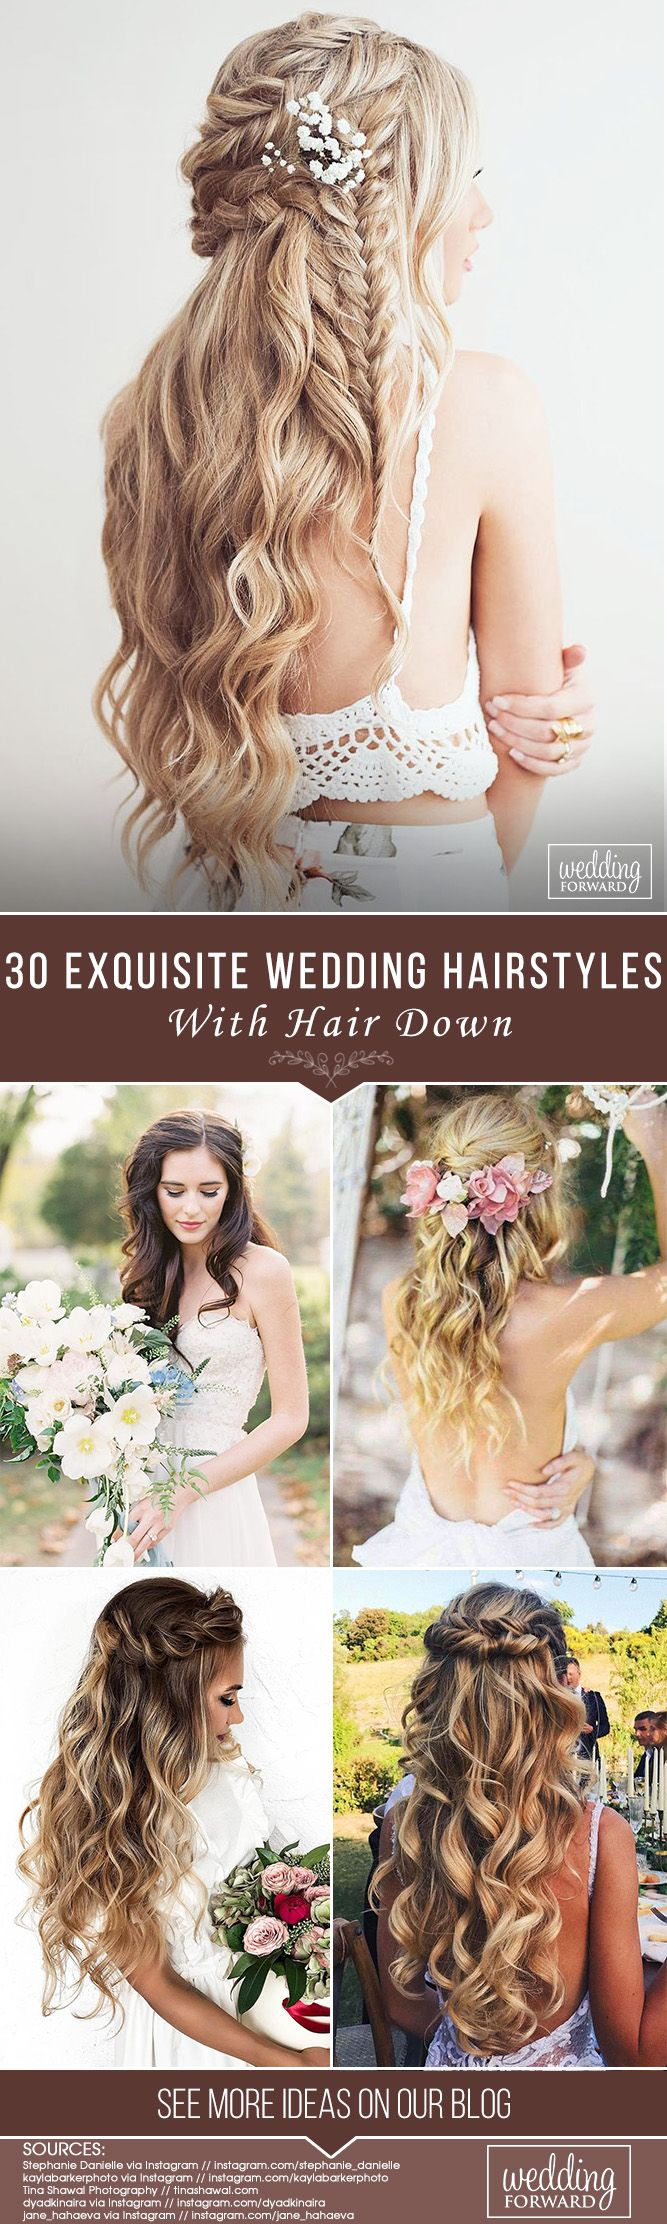 Bridal Hairstyles 33 Exquisite Wedding Hairstyles With